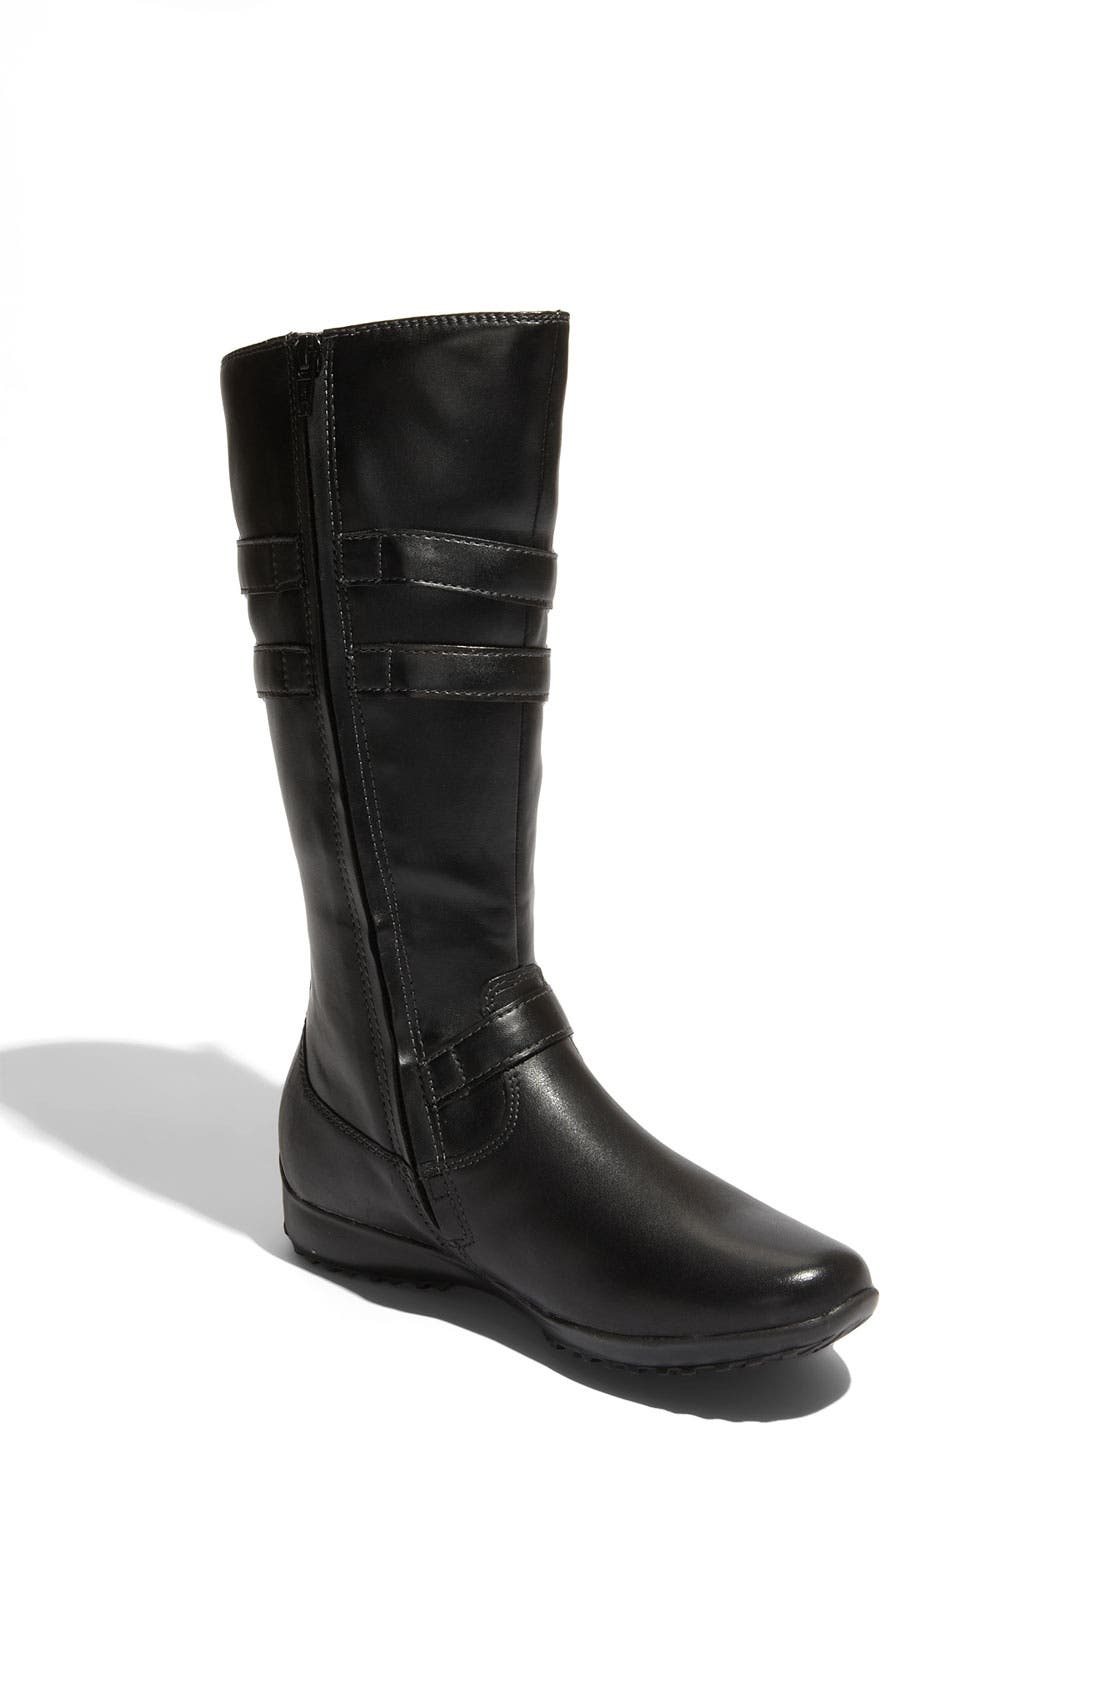 Main Image - Geox 'Peggy' Boot (Toddler, Little Kid & Big Kid)